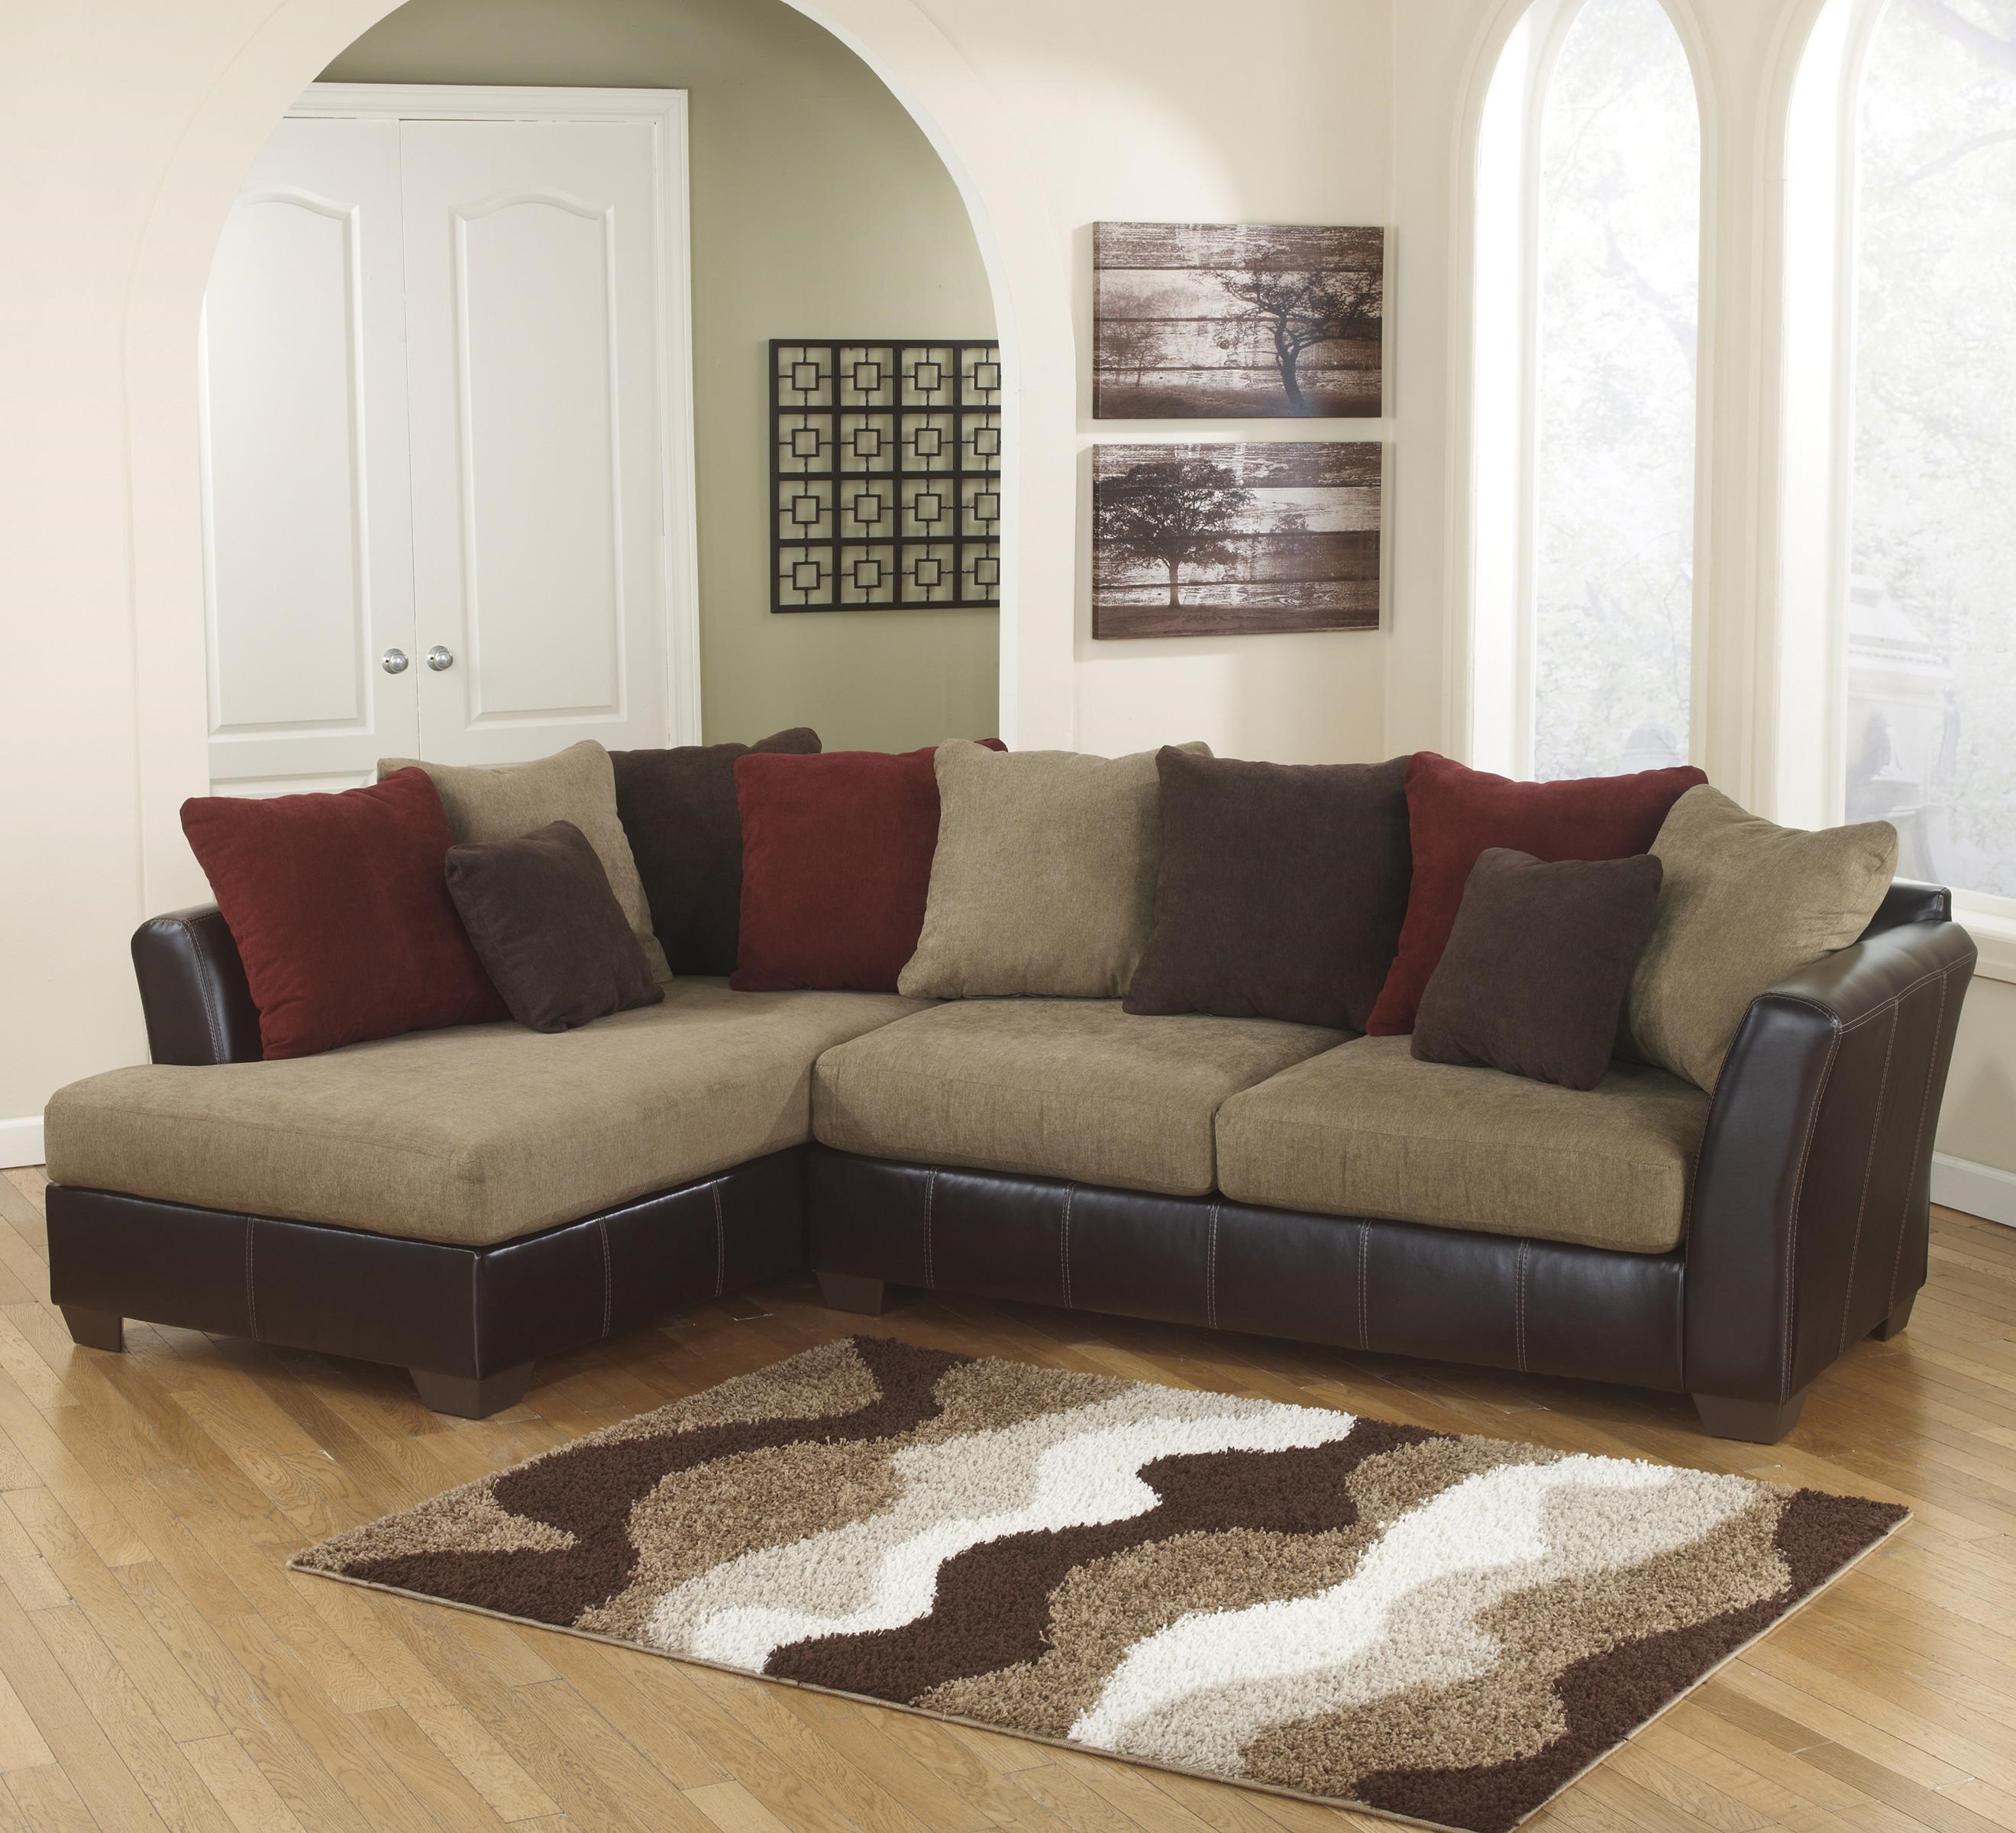 ashley furniture sectional couches roselawnlutheran. Black Bedroom Furniture Sets. Home Design Ideas